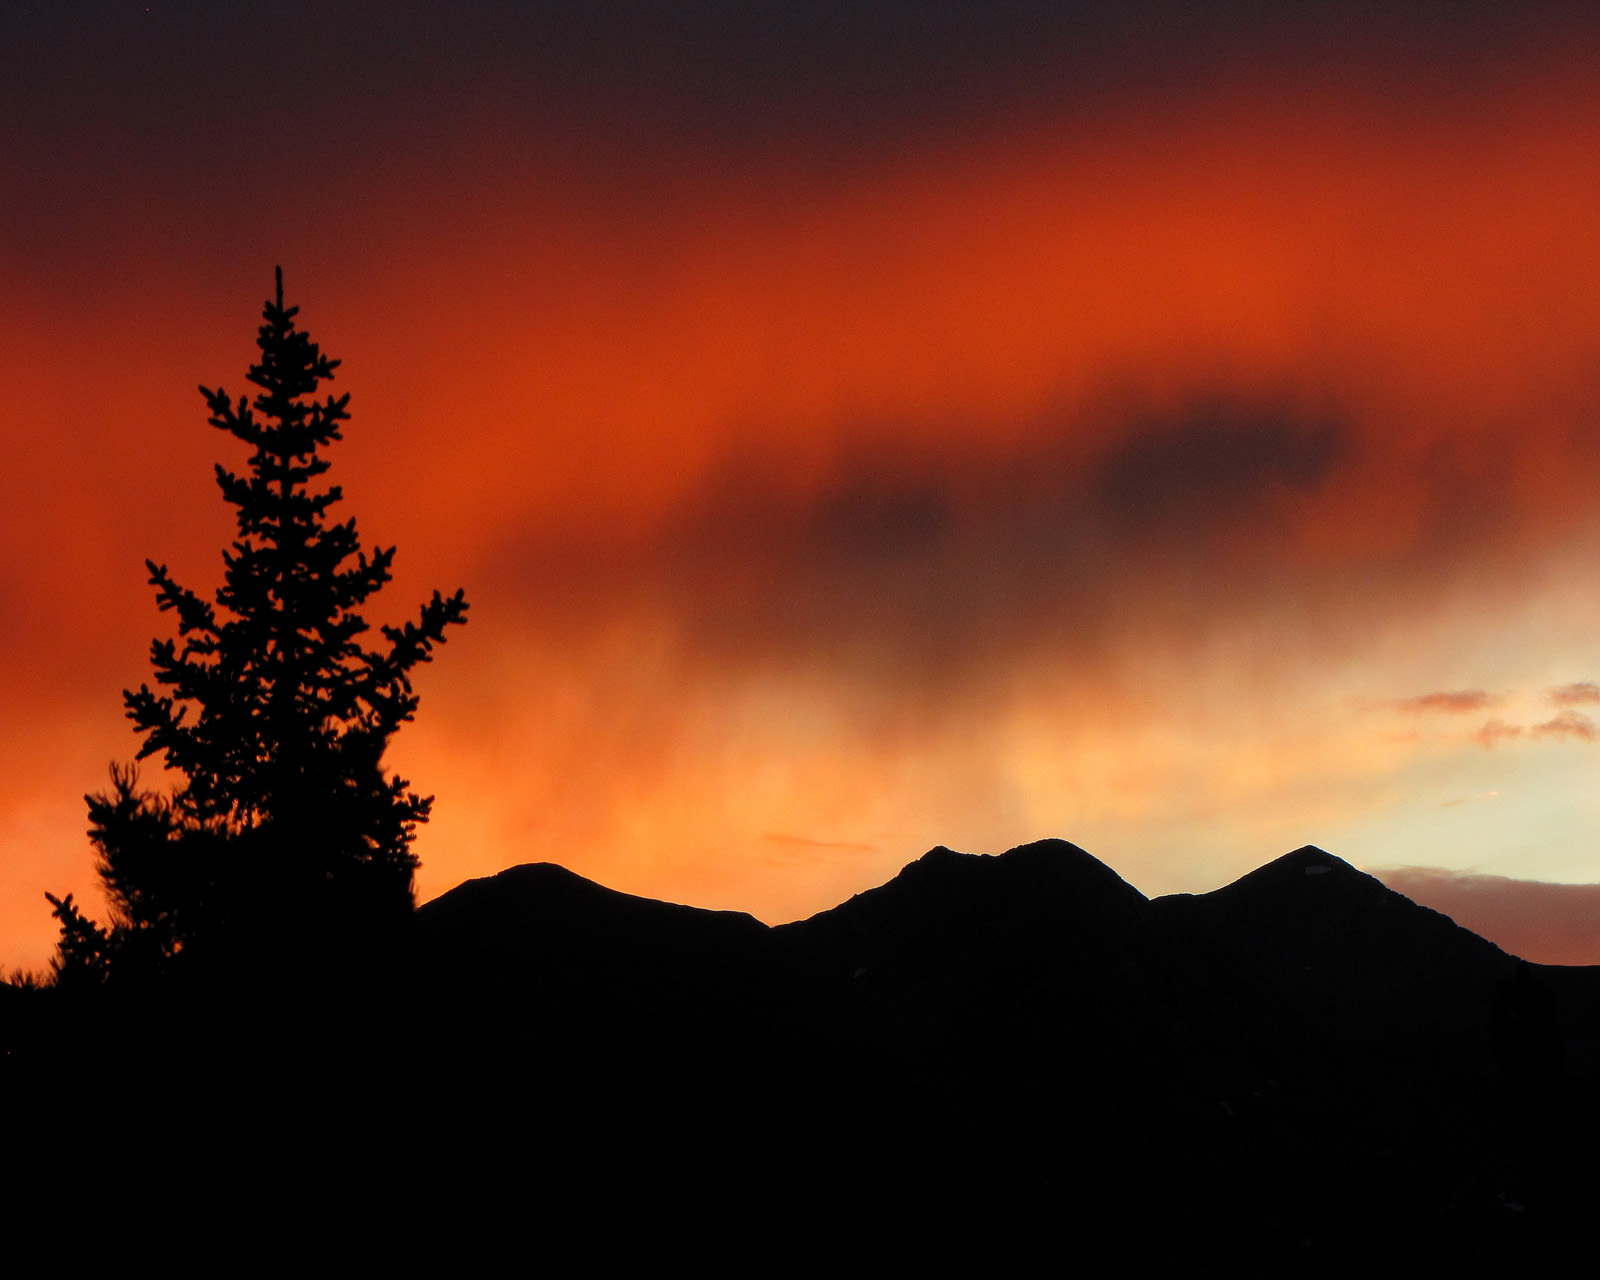 FIRE IN THE SKY, PHOTOGRAPH